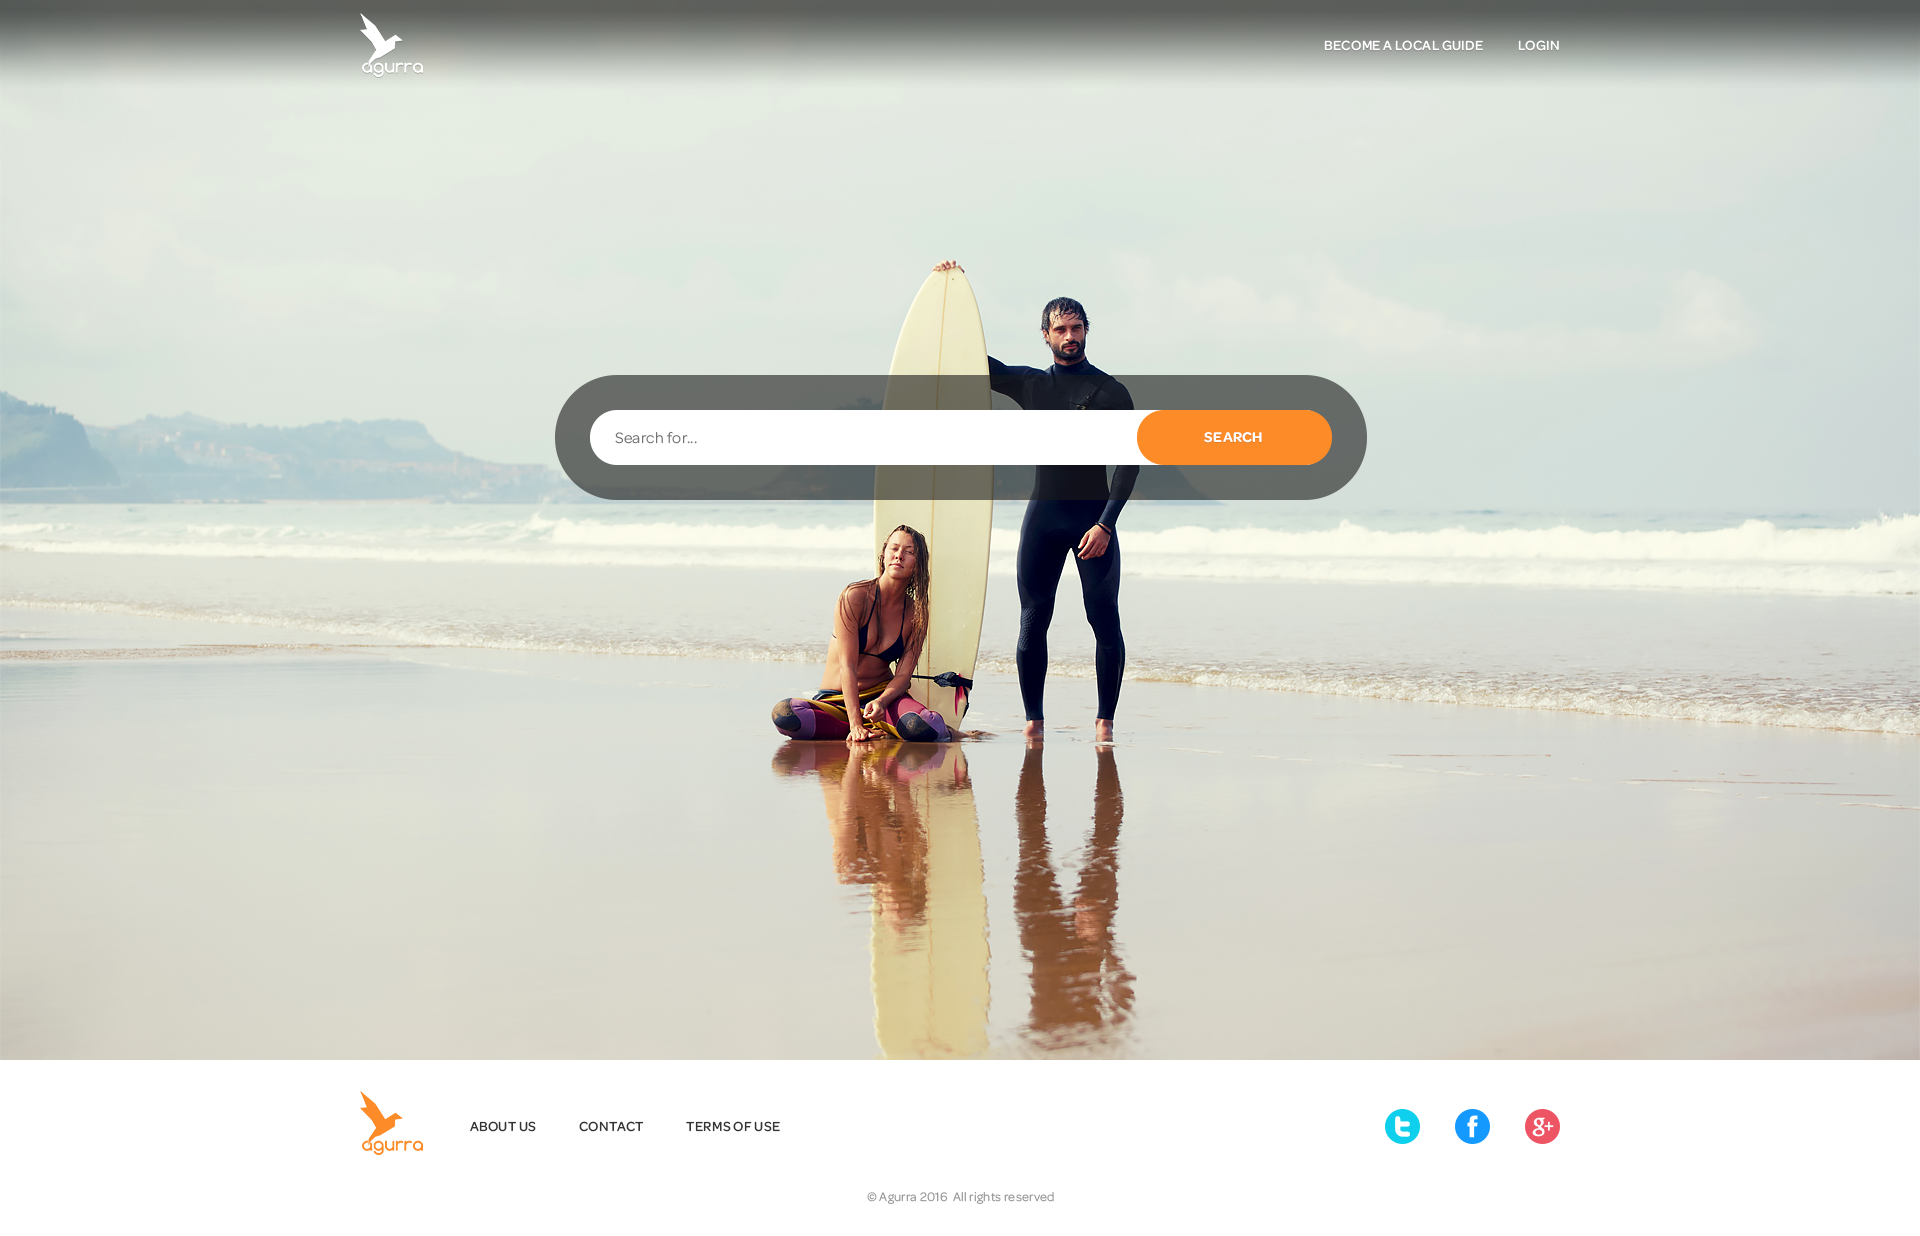 Agurra Landing Page and Become a Guide Page